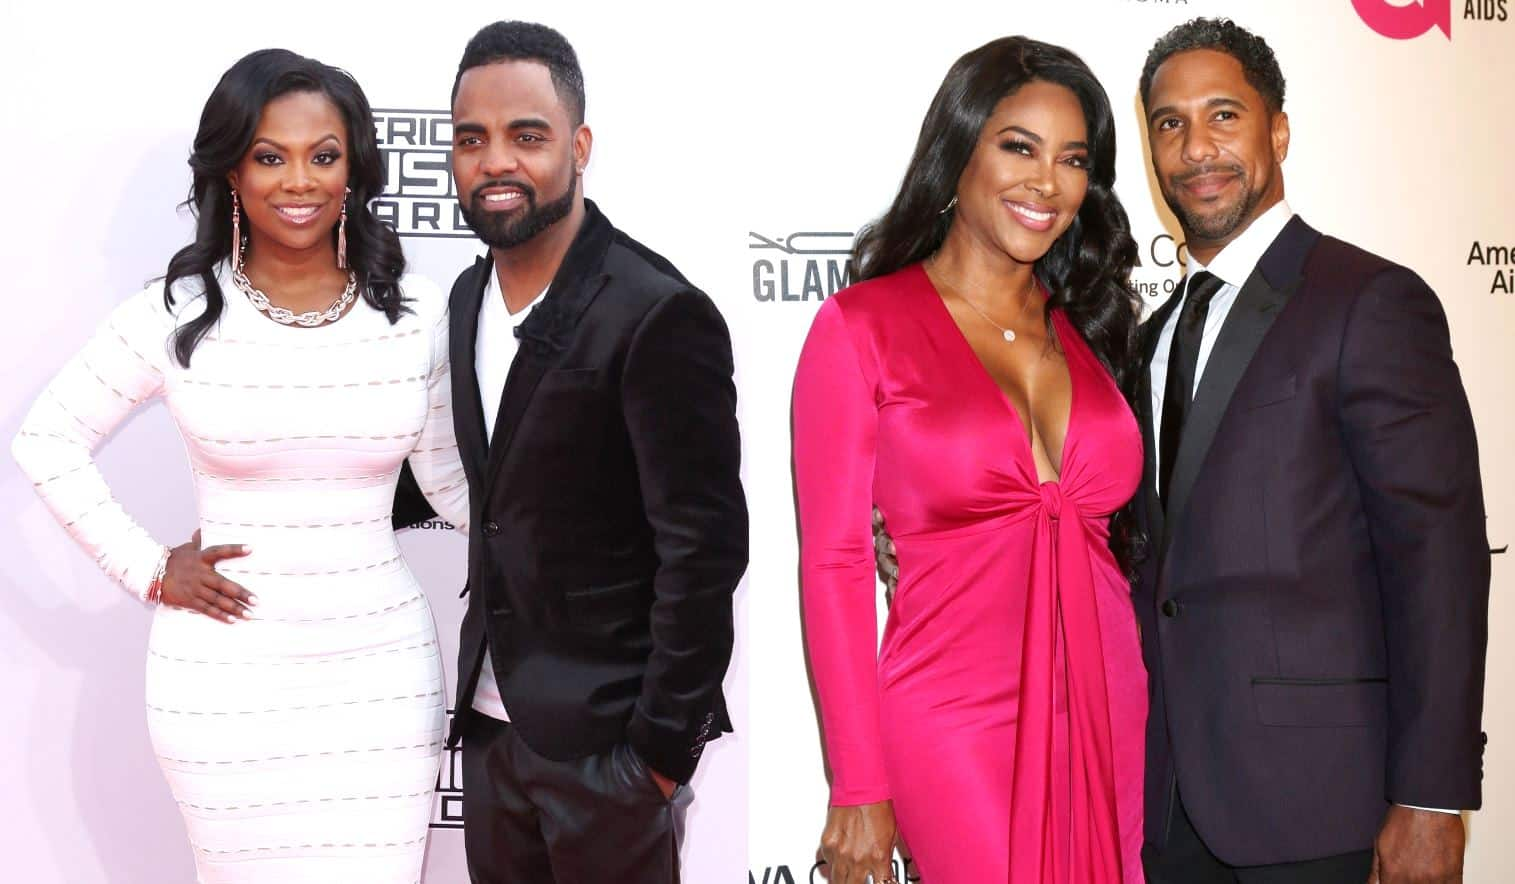 RHOA Kandi Burruss, Todd Tucker and Kenya Moore Marc Daly